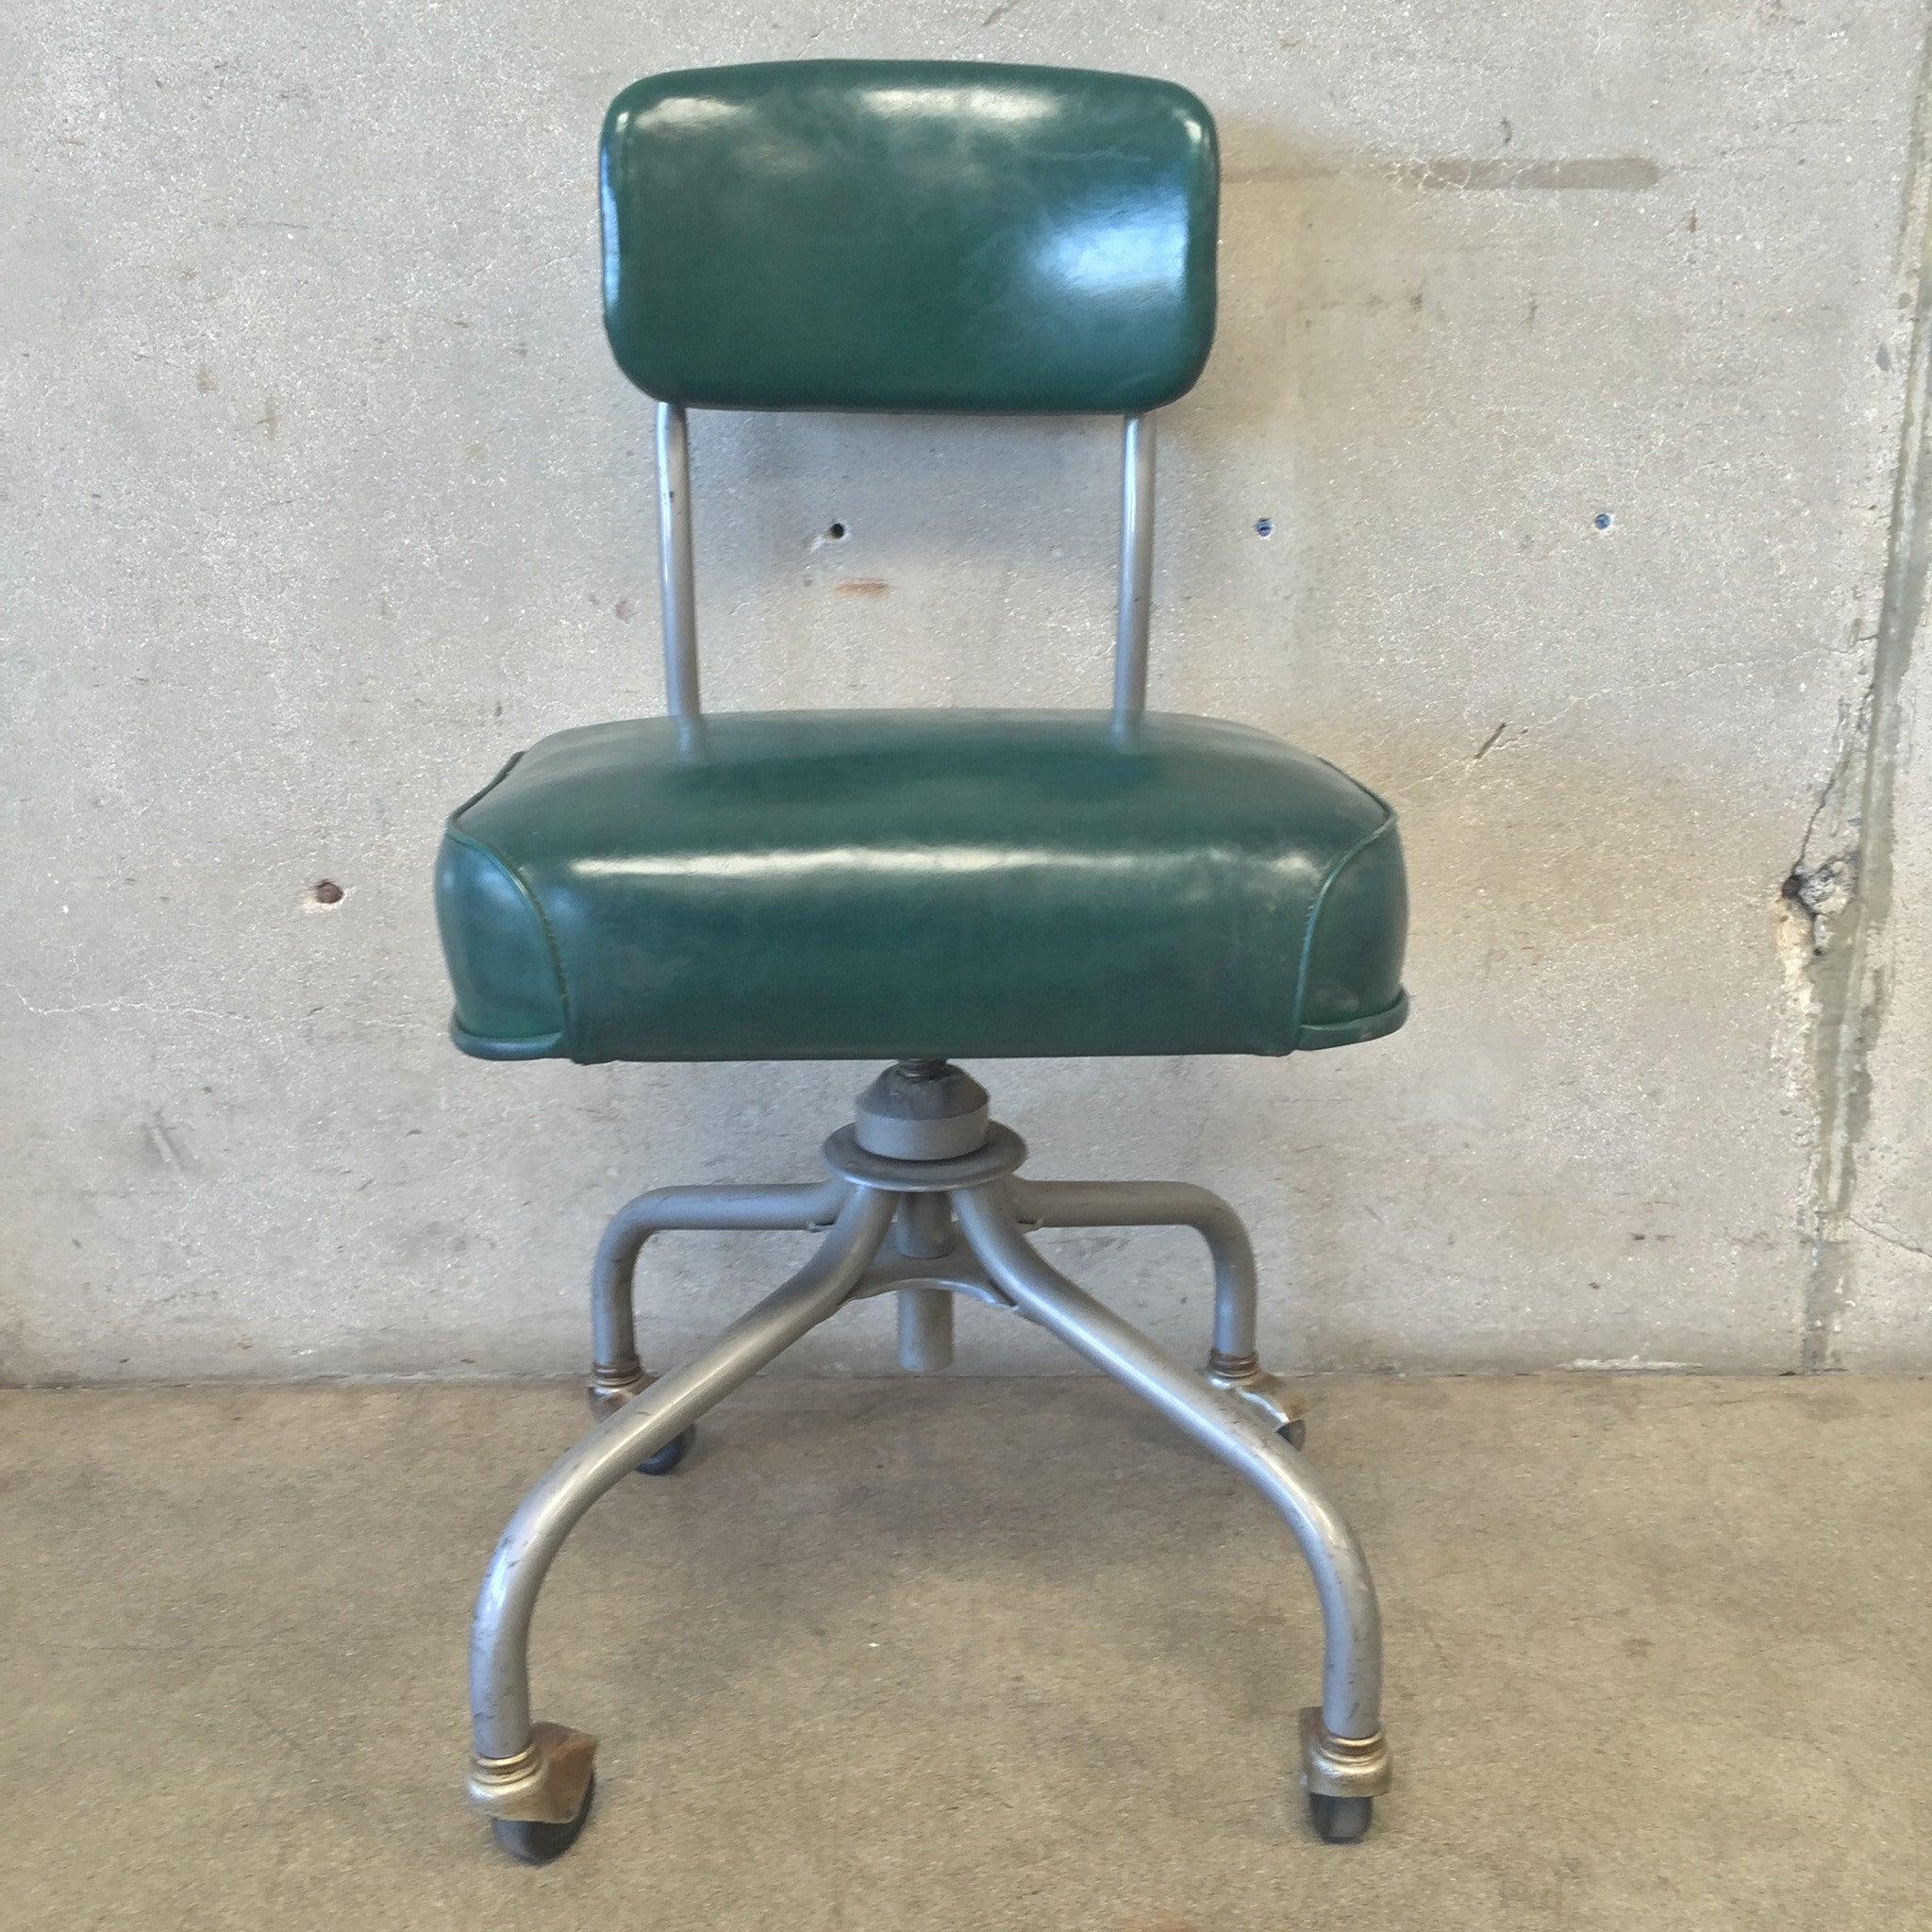 Vintage steelcase chairs - Vintage Steelcase Green Office Chair